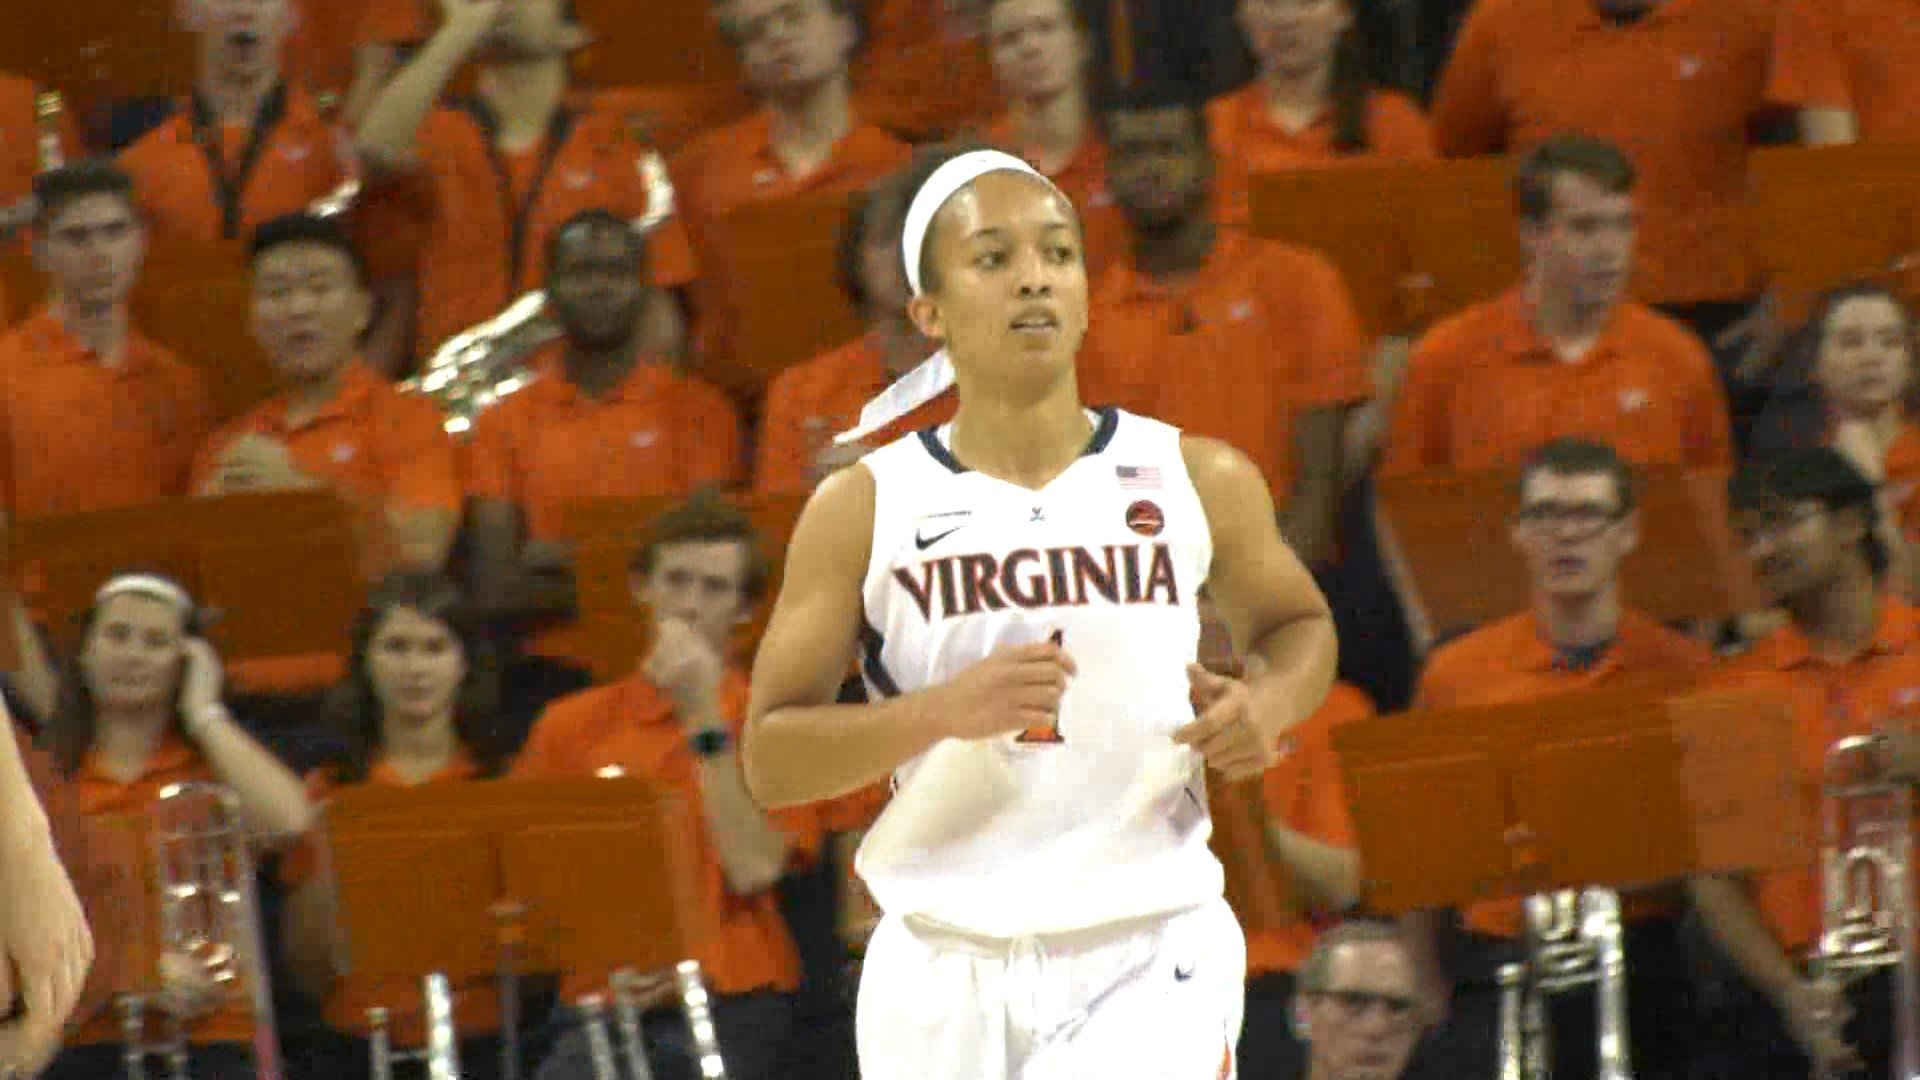 Former STAB star Brianna Tinsley had 3 points and 3 assists in 19 minutes for UVa